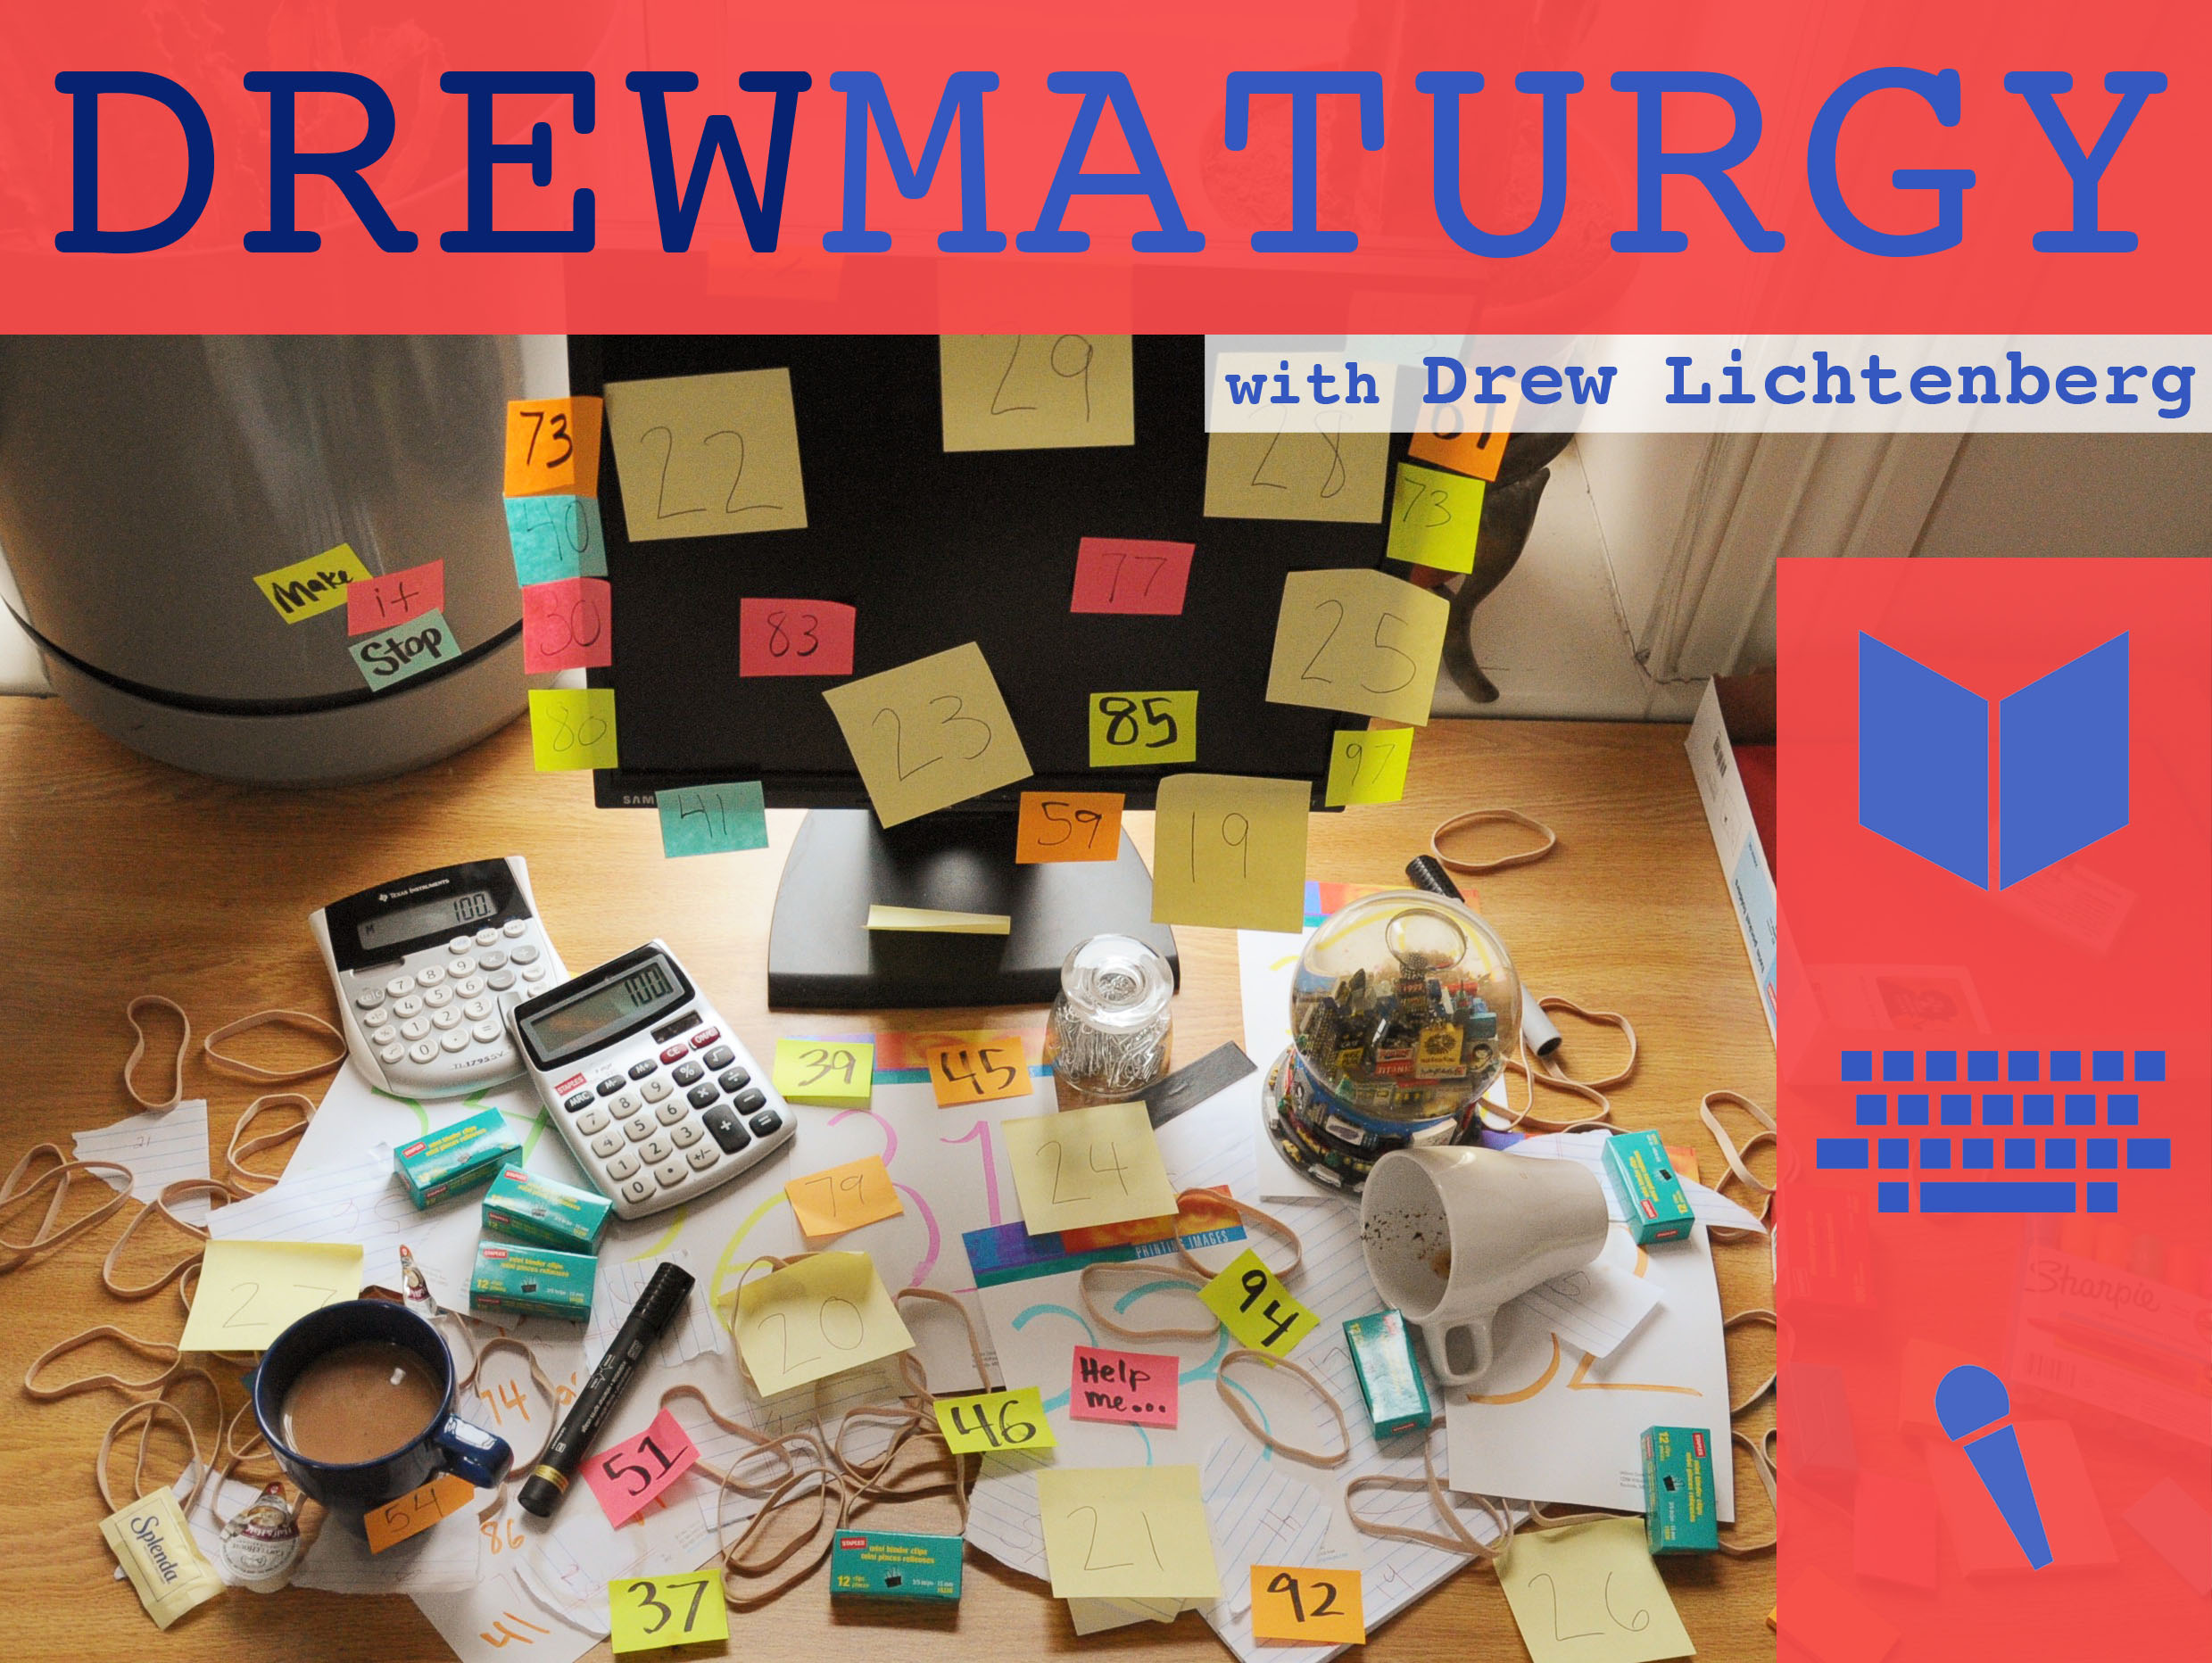 Drewmaturgy with Drew Lichtenberg